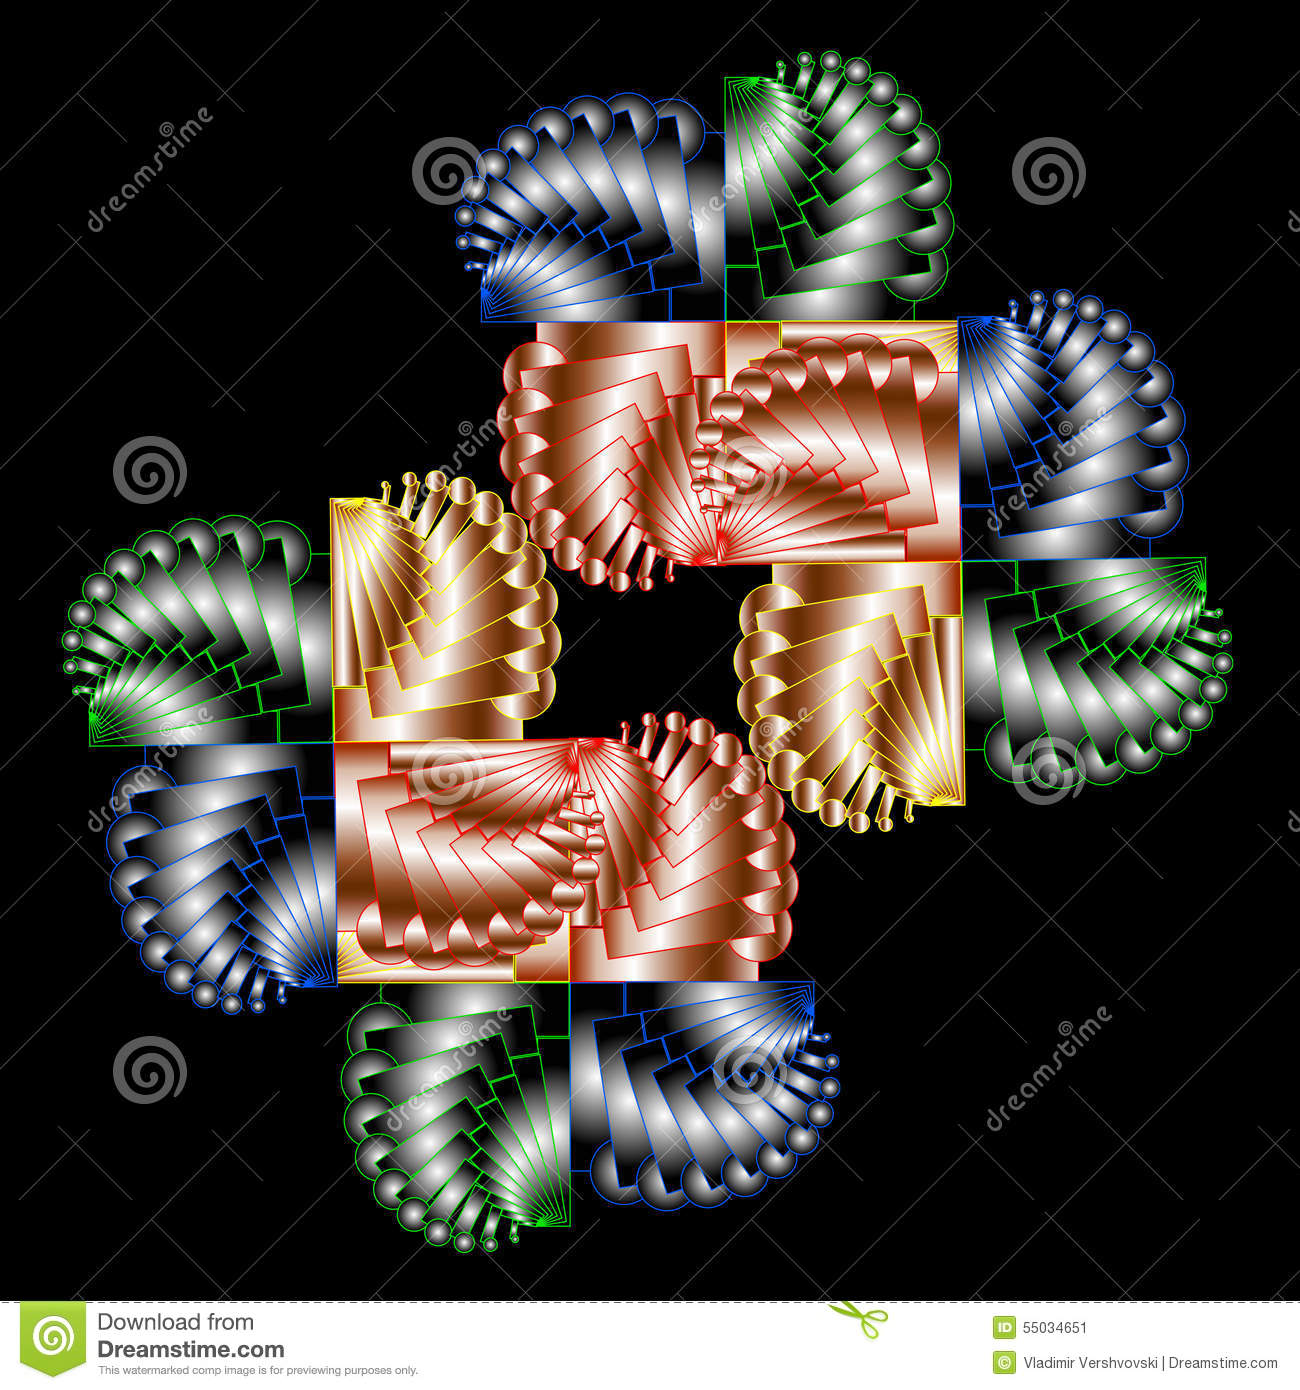 Graphical Composition With Color Spiral Elements On Black Backg.